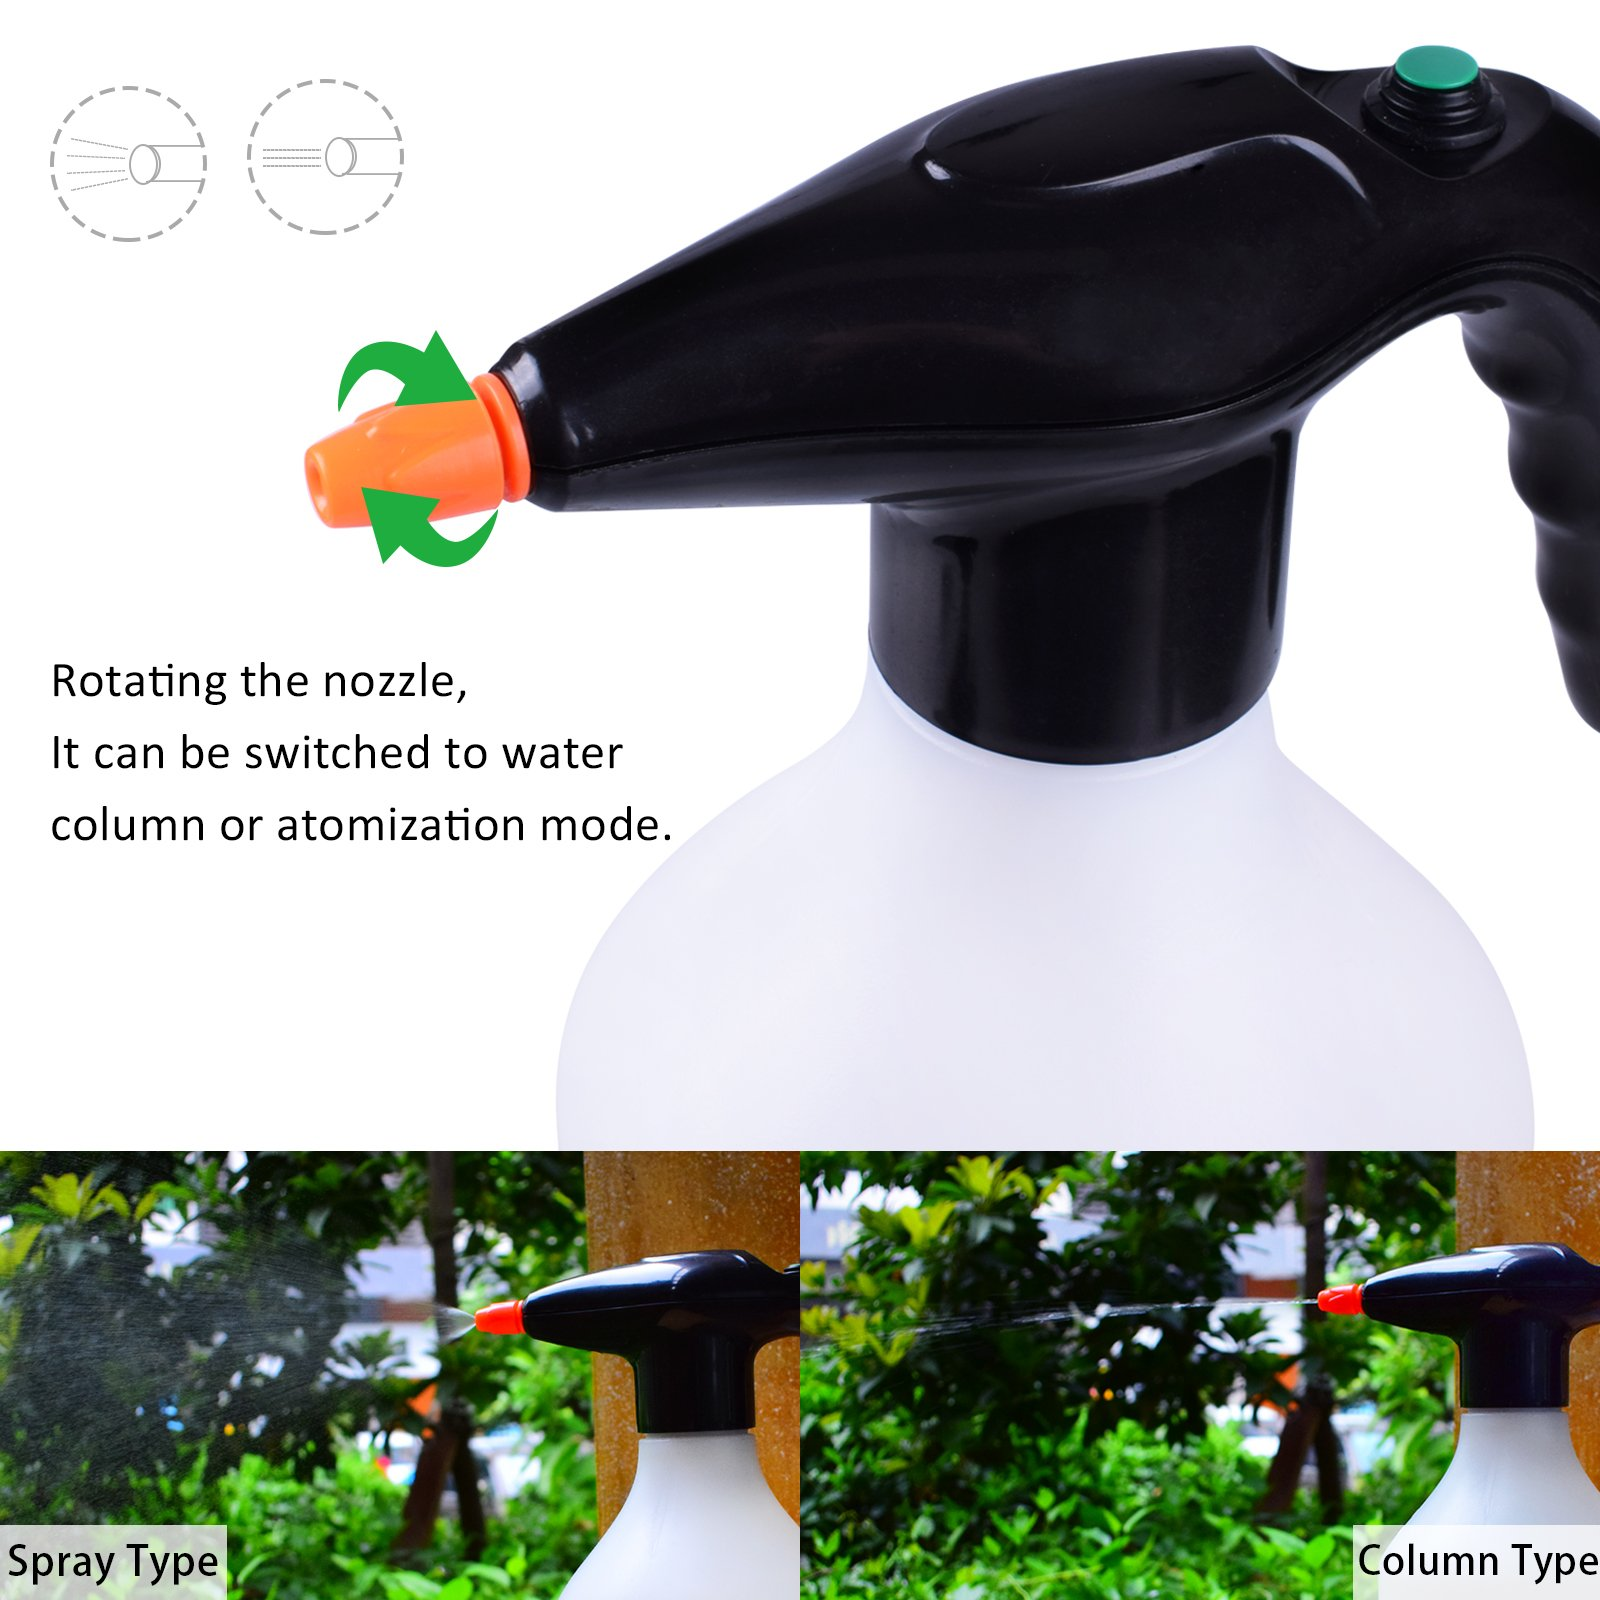 MIXC Electric Automatic Mist Plant Spray Bottle Garden Sprayer 0.5 Gallon Water Mister USB Rechargeable Fine Mist to Stream with Adjustable Nozzle for Watering, Fertilizing, Home Cleaning, Car Washing